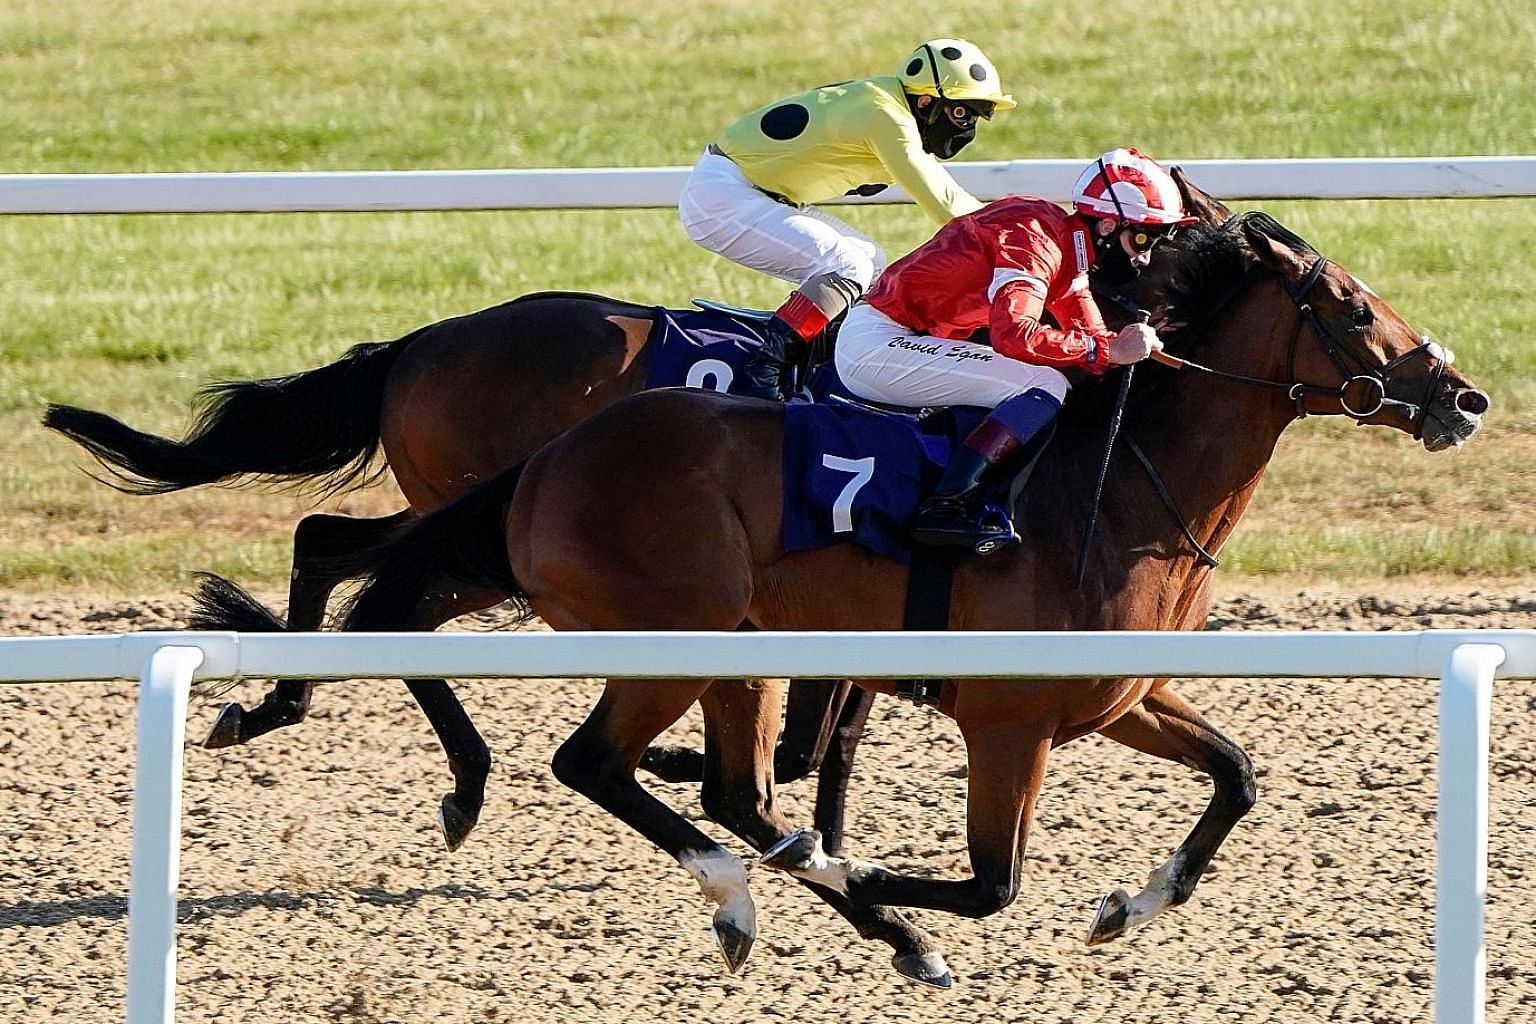 David Egan riding Valyrian Steel to win the Betway Maiden Stakes (Div II) at Newcastle Racecourse on Monday, as English racing resumed without fans present. Other health and safety precautions undertaken included the wearing of masks by jockeys and s